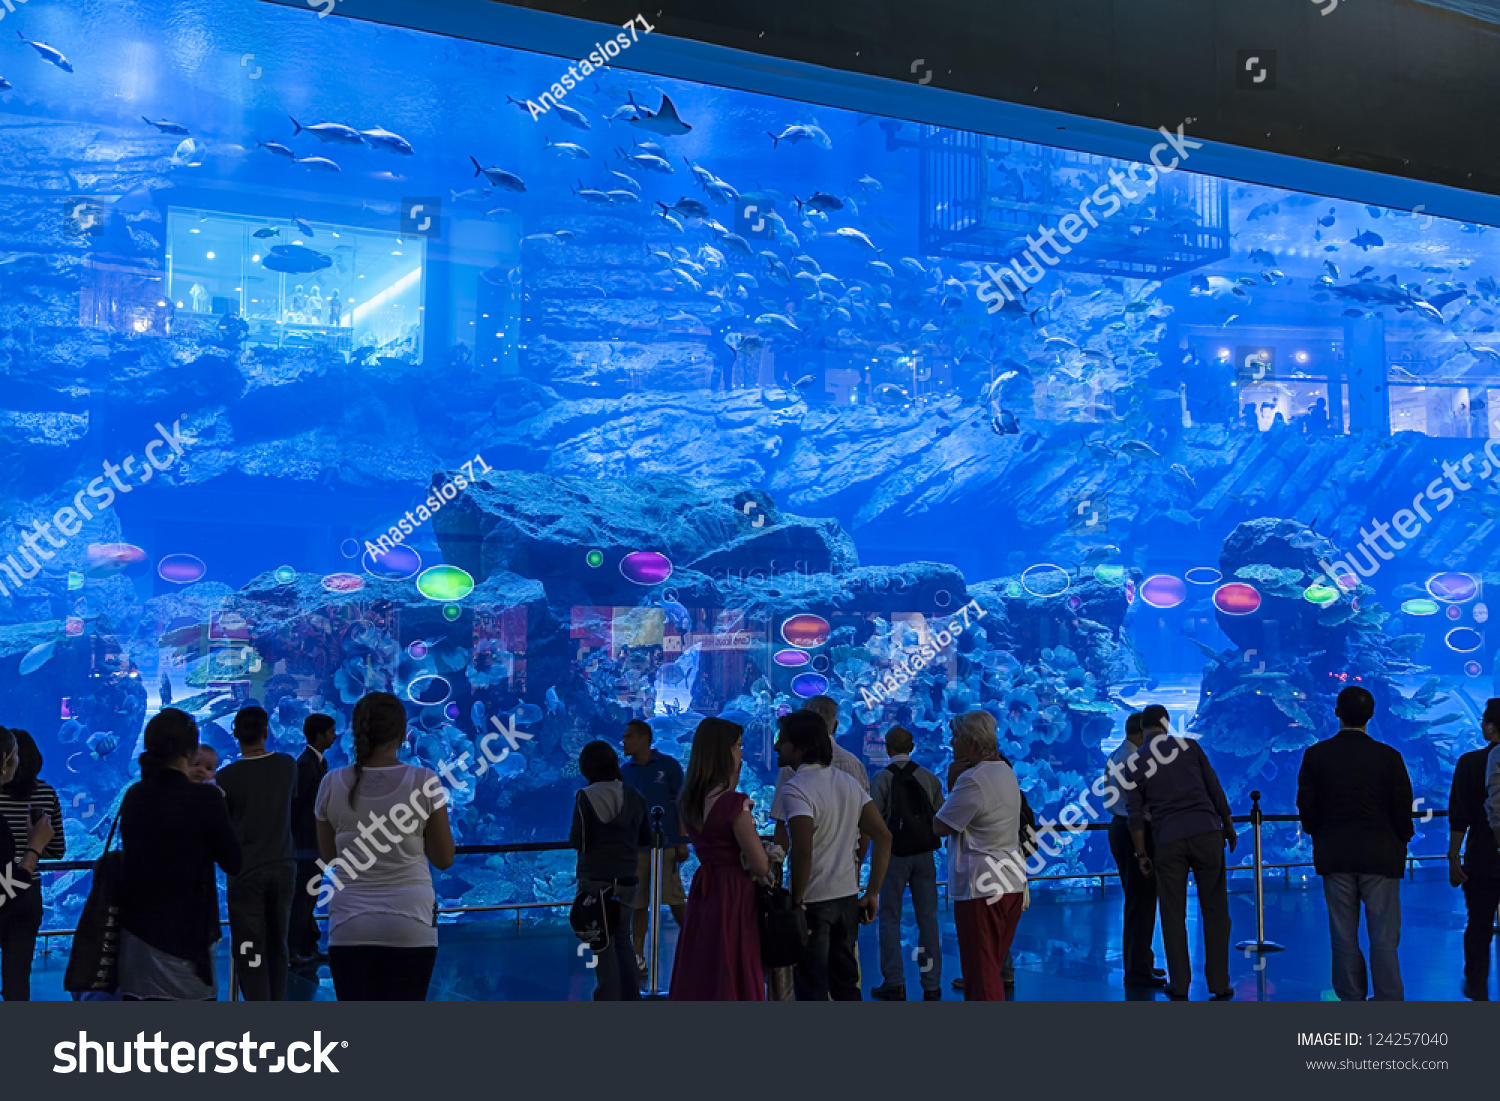 Fish aquarium in uae - Dubai Uae Jan 4 Aquarium In Dubai Mall World S Largest Shopping Mall